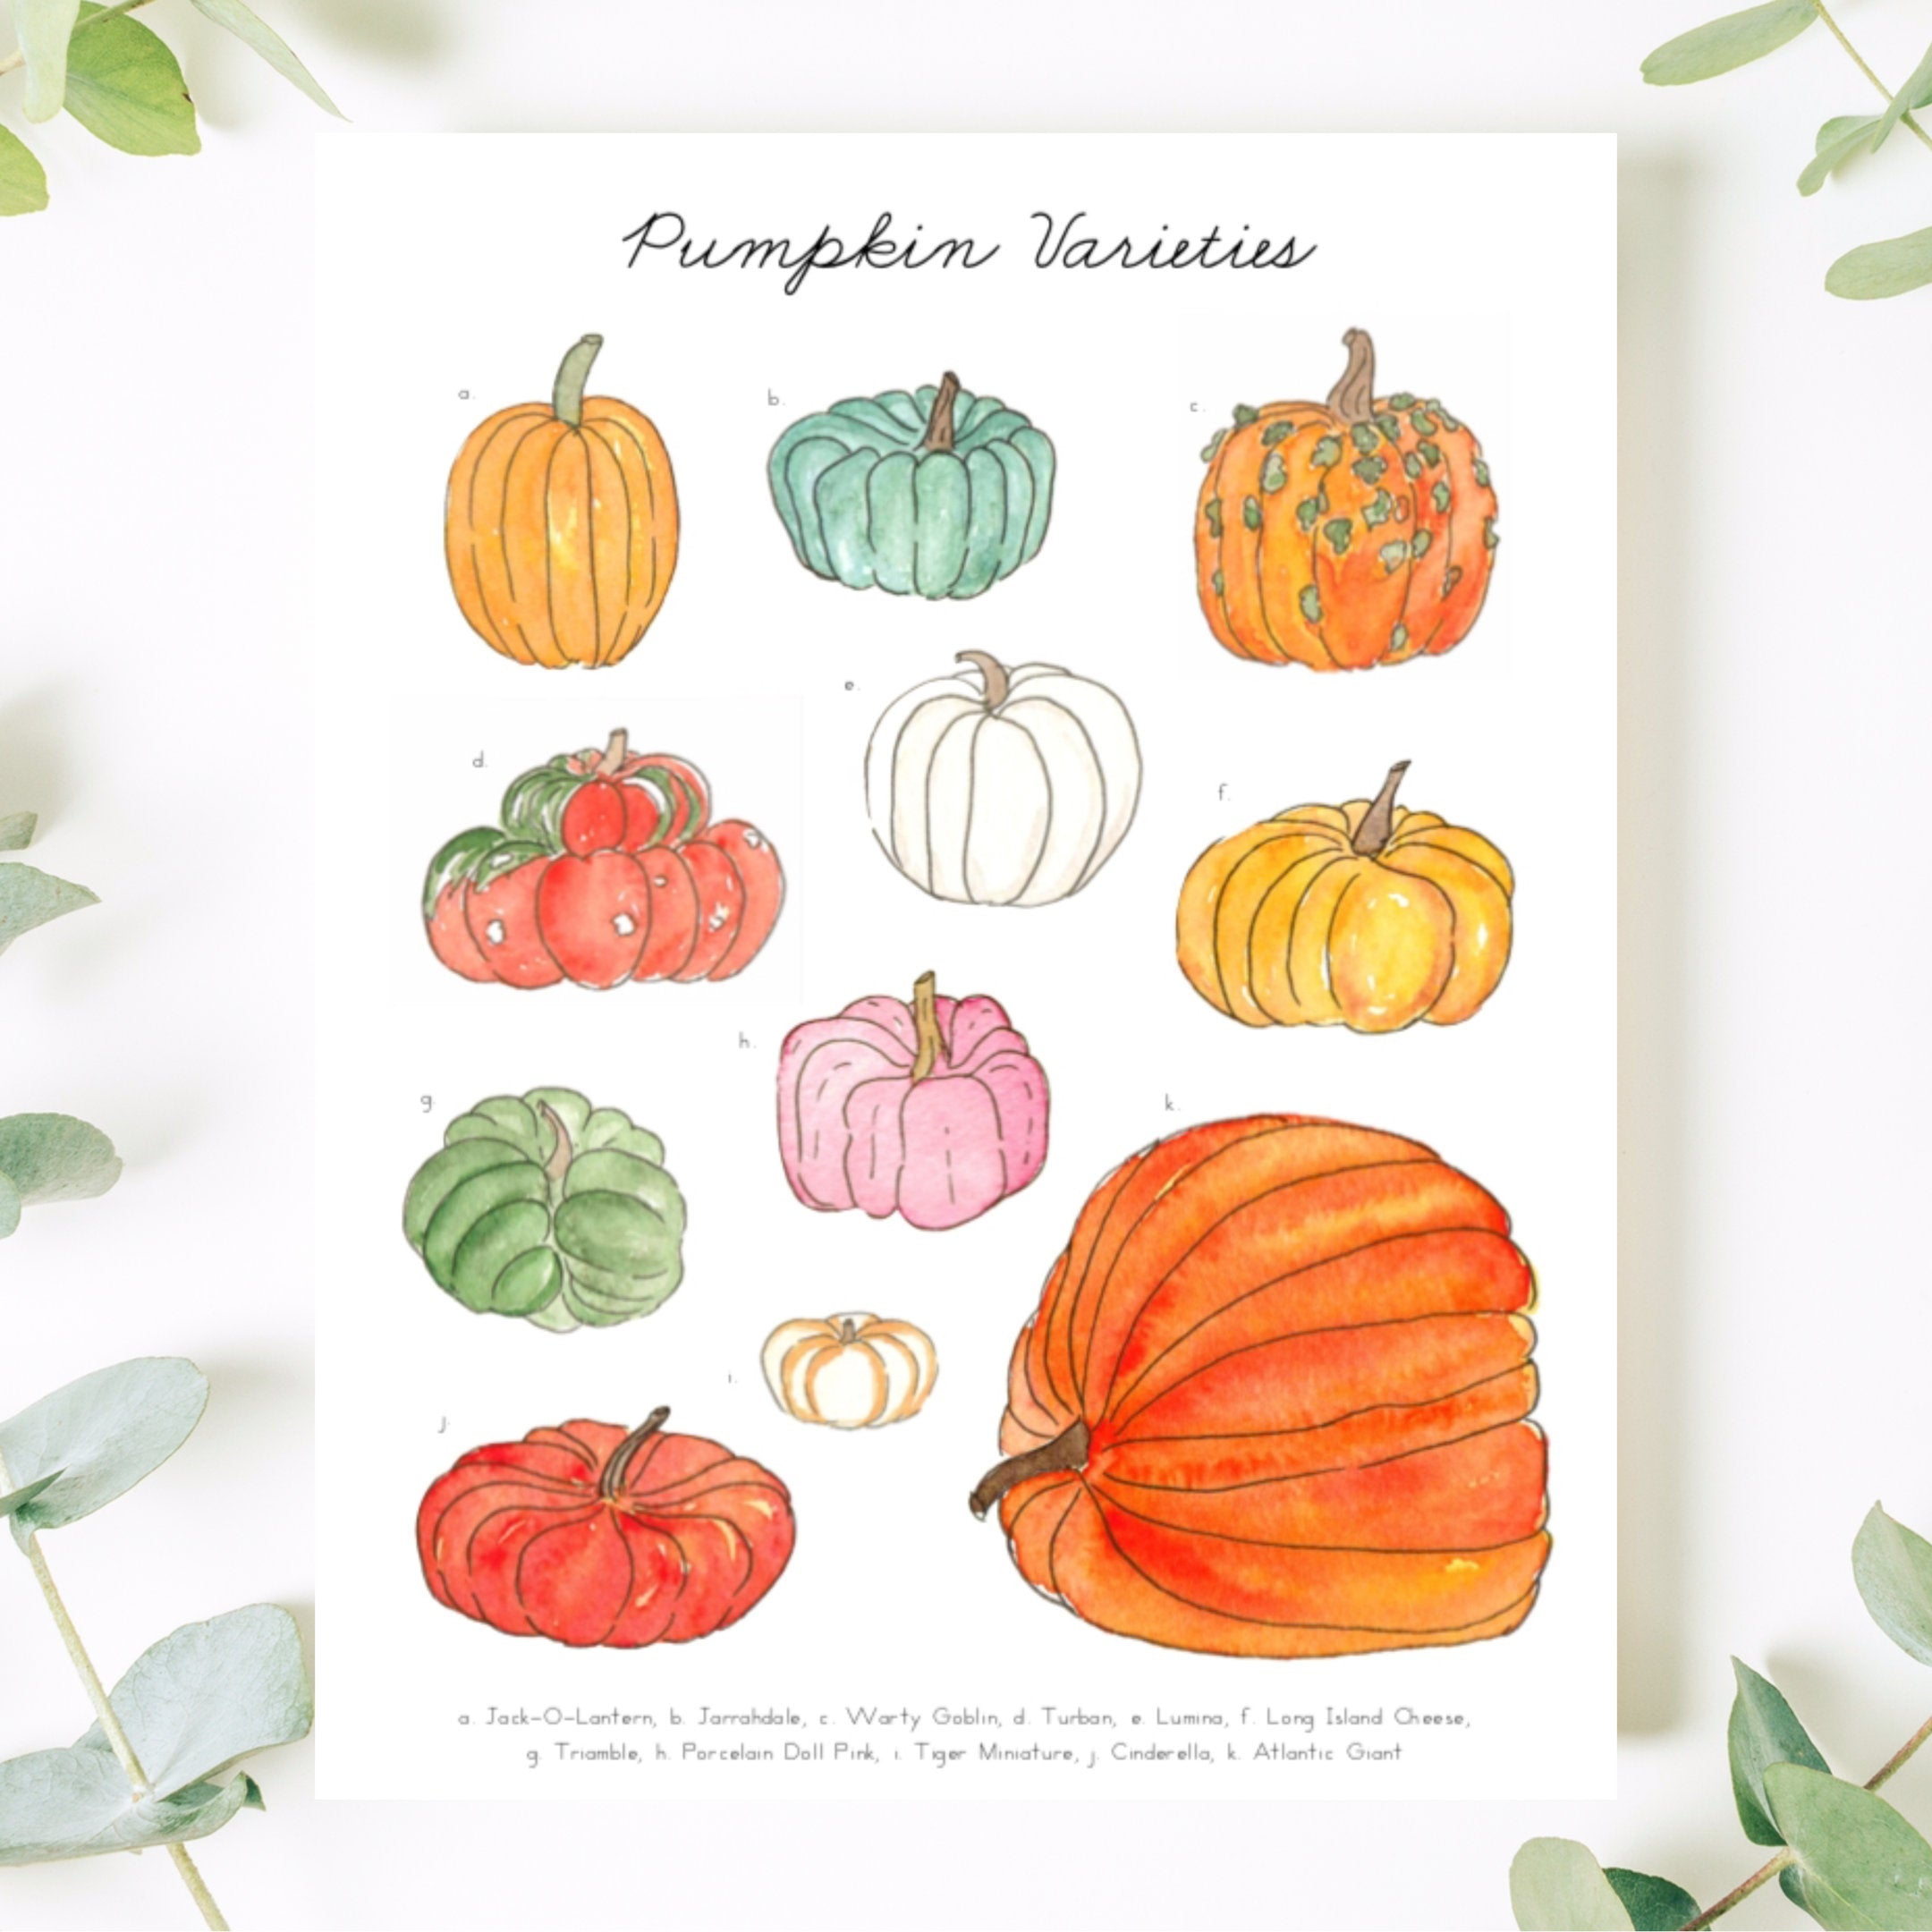 Pumpkin Varieties